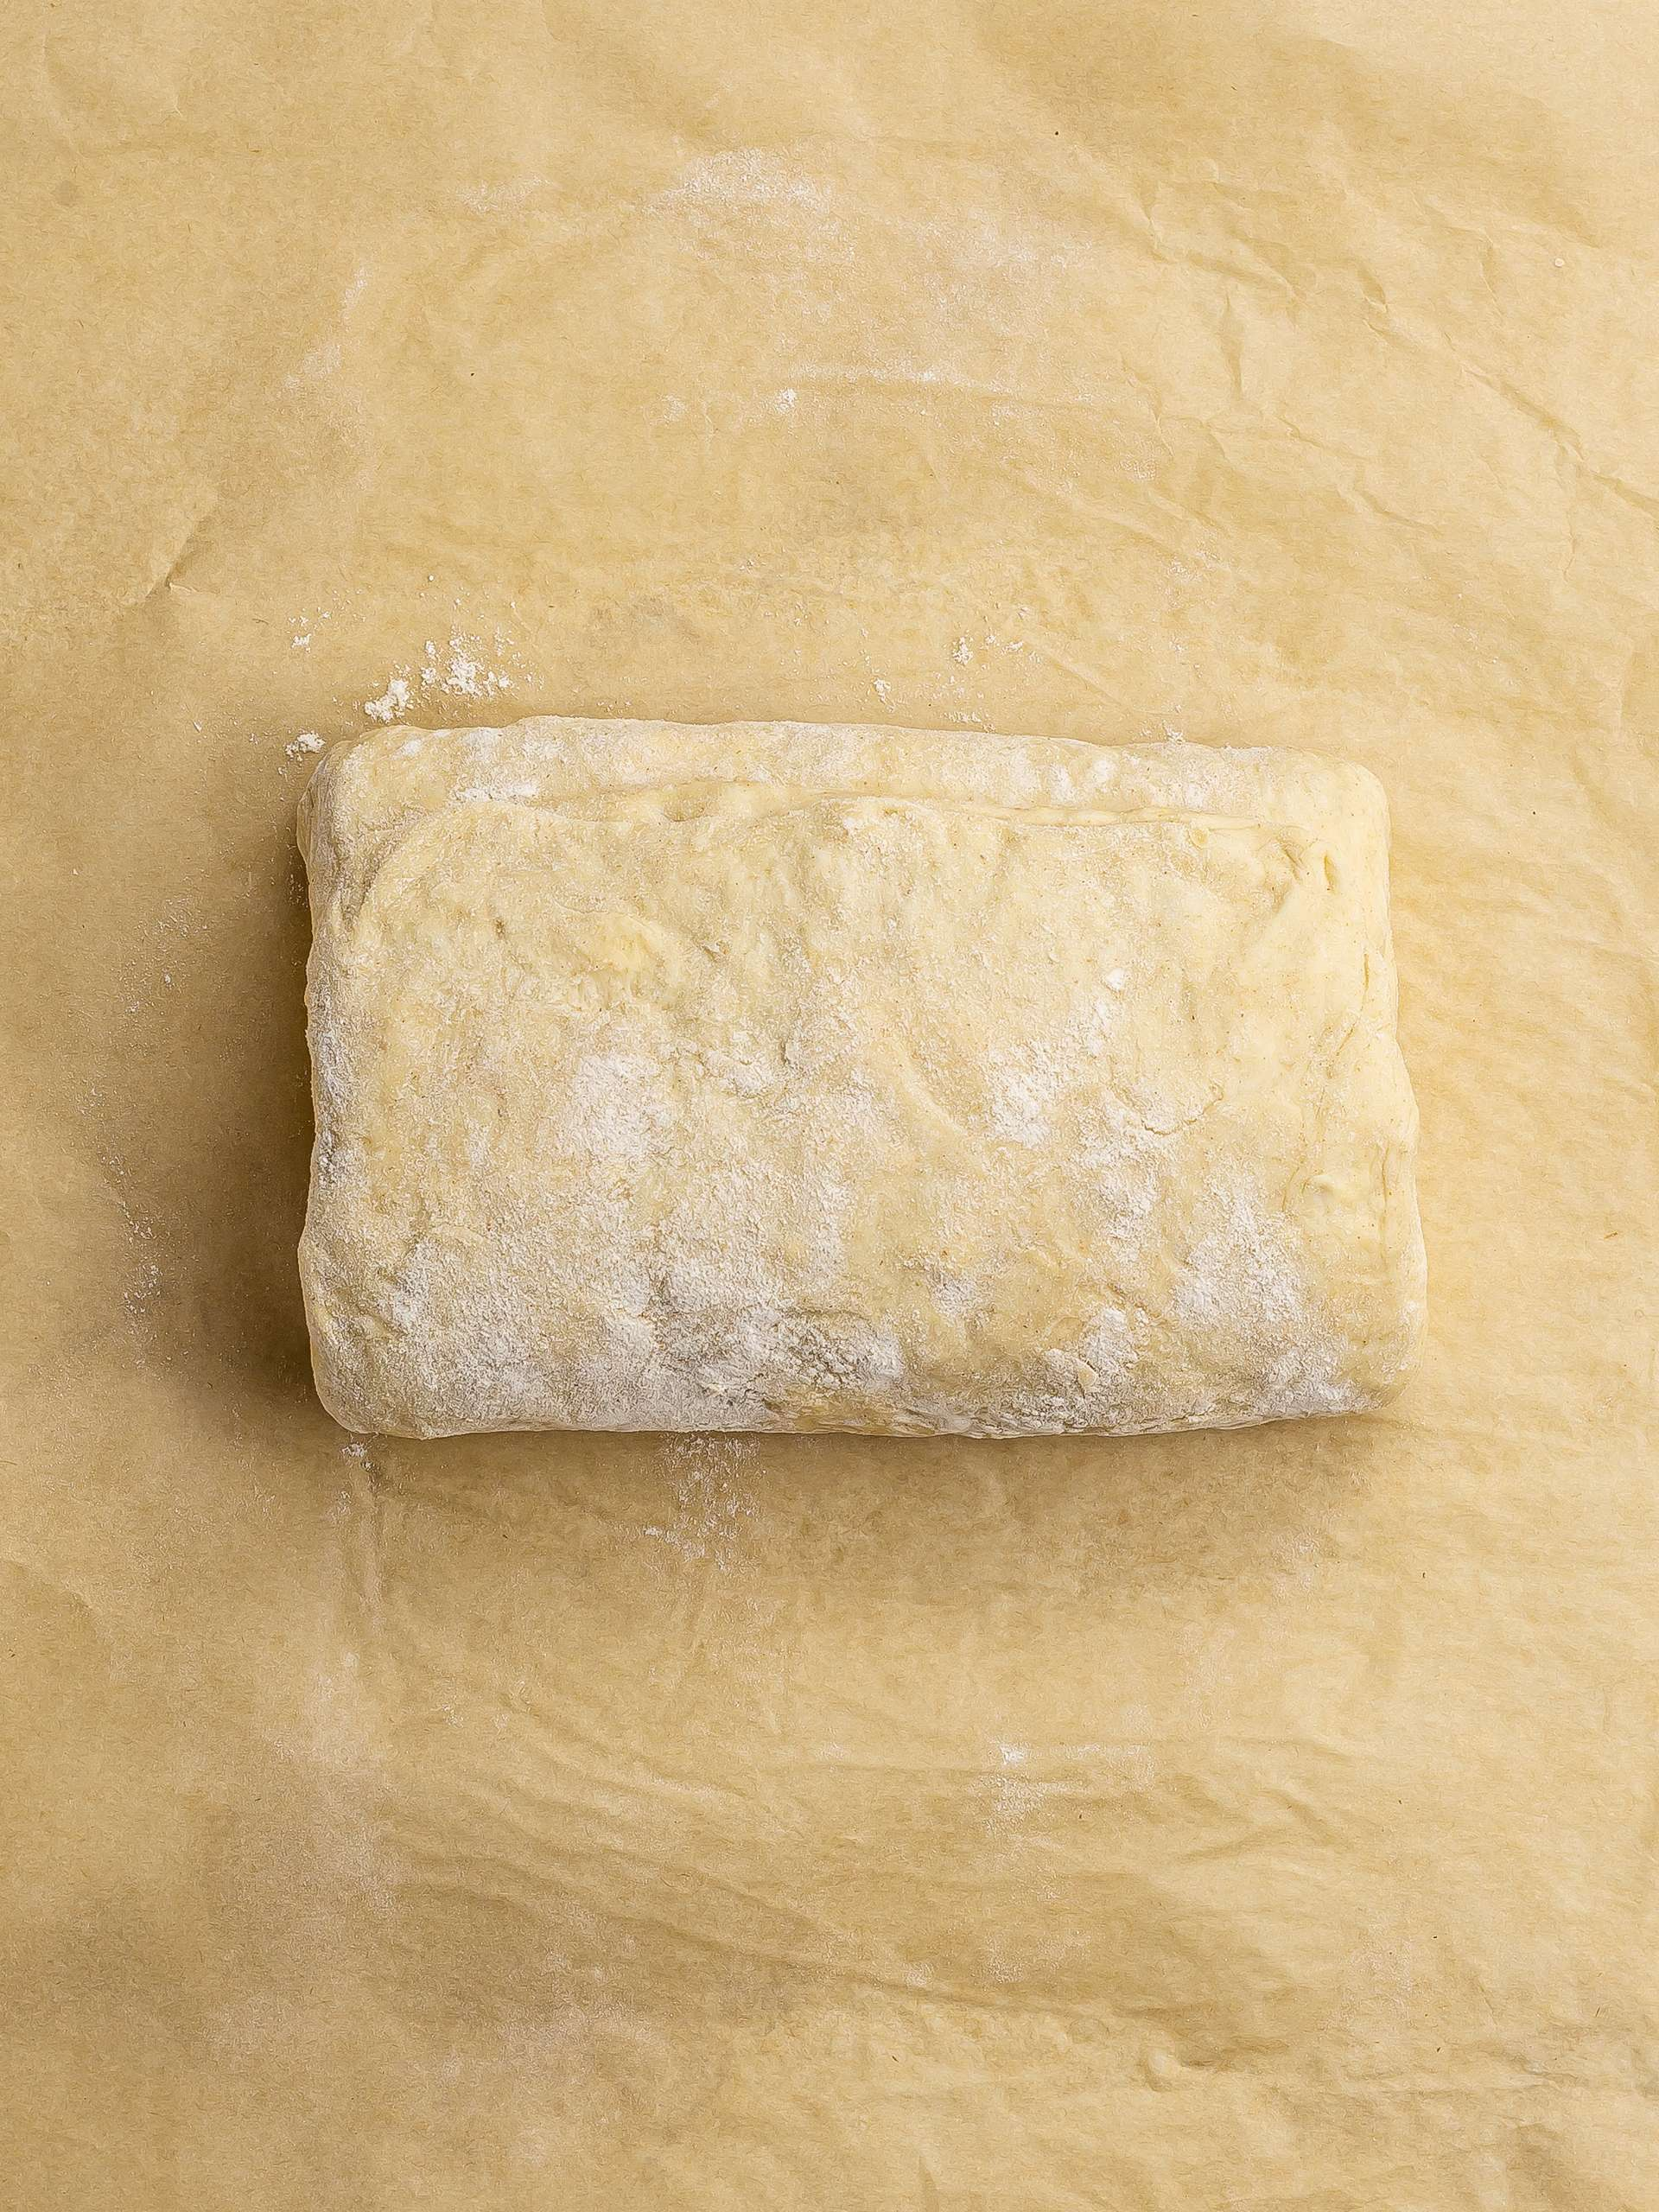 folded pastry dough